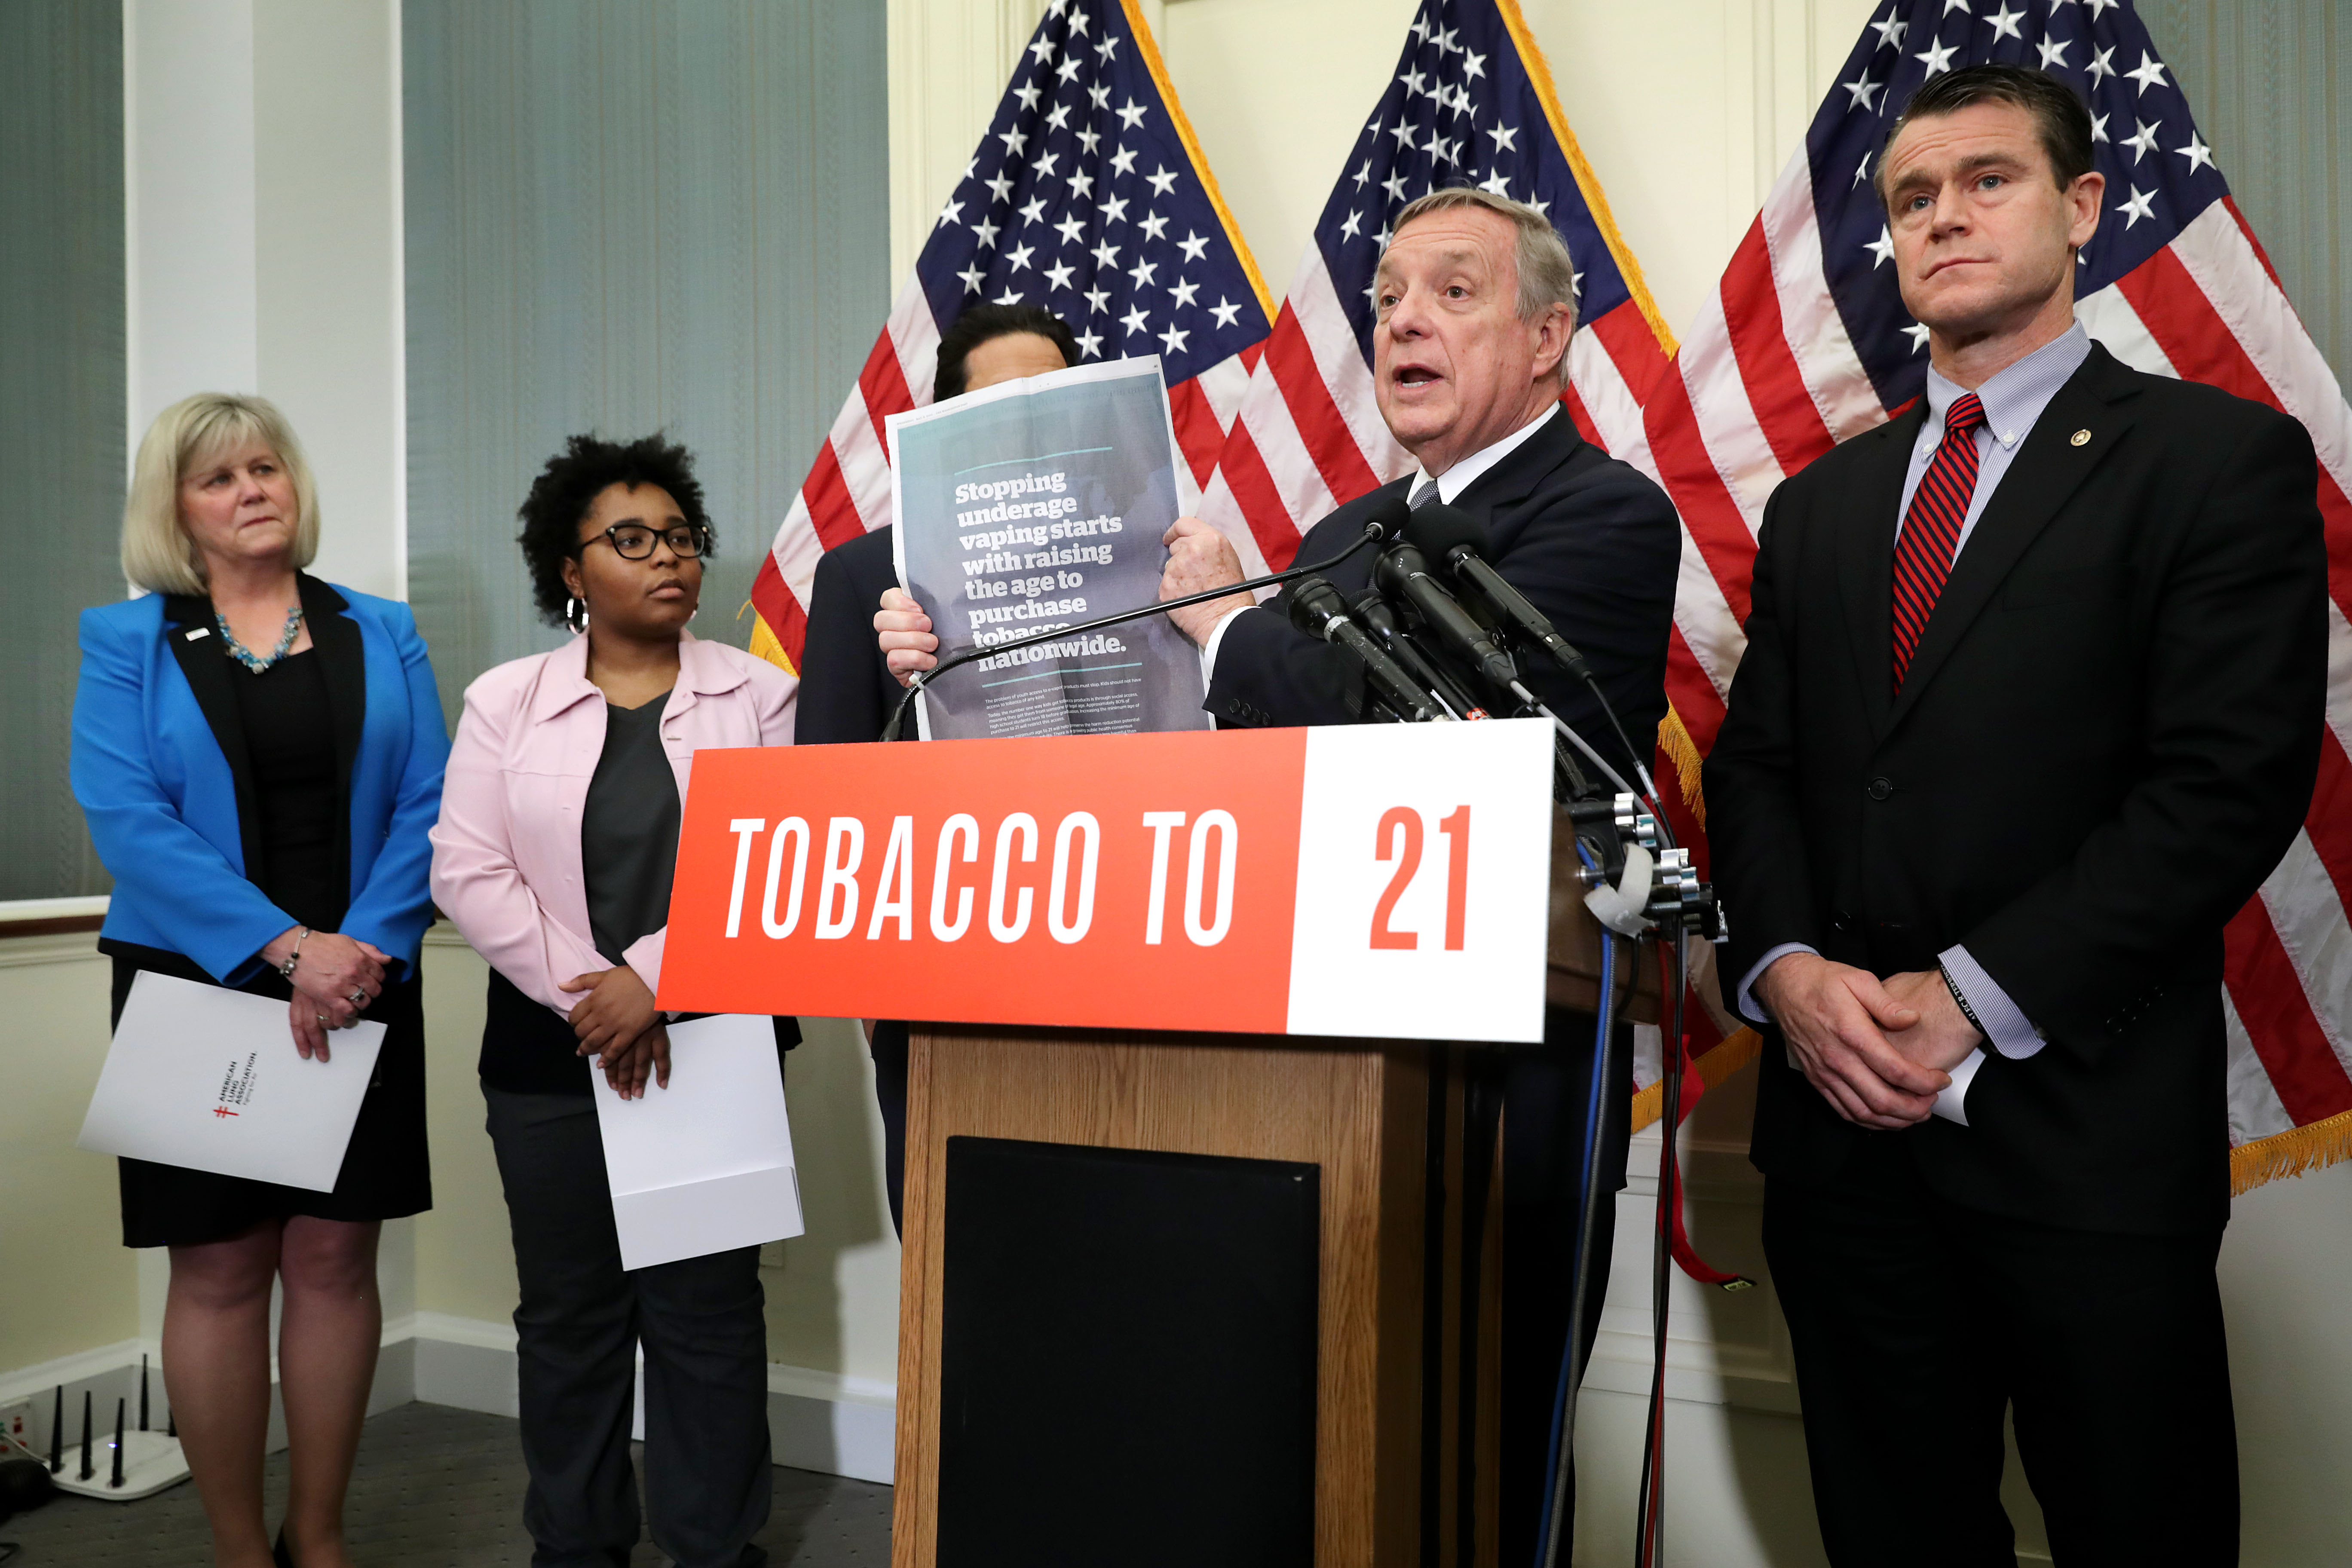 American Lung Association Chief Mission Officer Deborah Brown, high school senior and Delaware Kick Butts Generation Chair Queen Cornish, Sen. Richard Durbin and Sen. Todd Young talk about their proposed Tobacco To 21 legislation during a news conference at the U.S. Capitol May 08, 2019 in Washington, DC. (Photo by Chip Somodevilla/Getty Images)